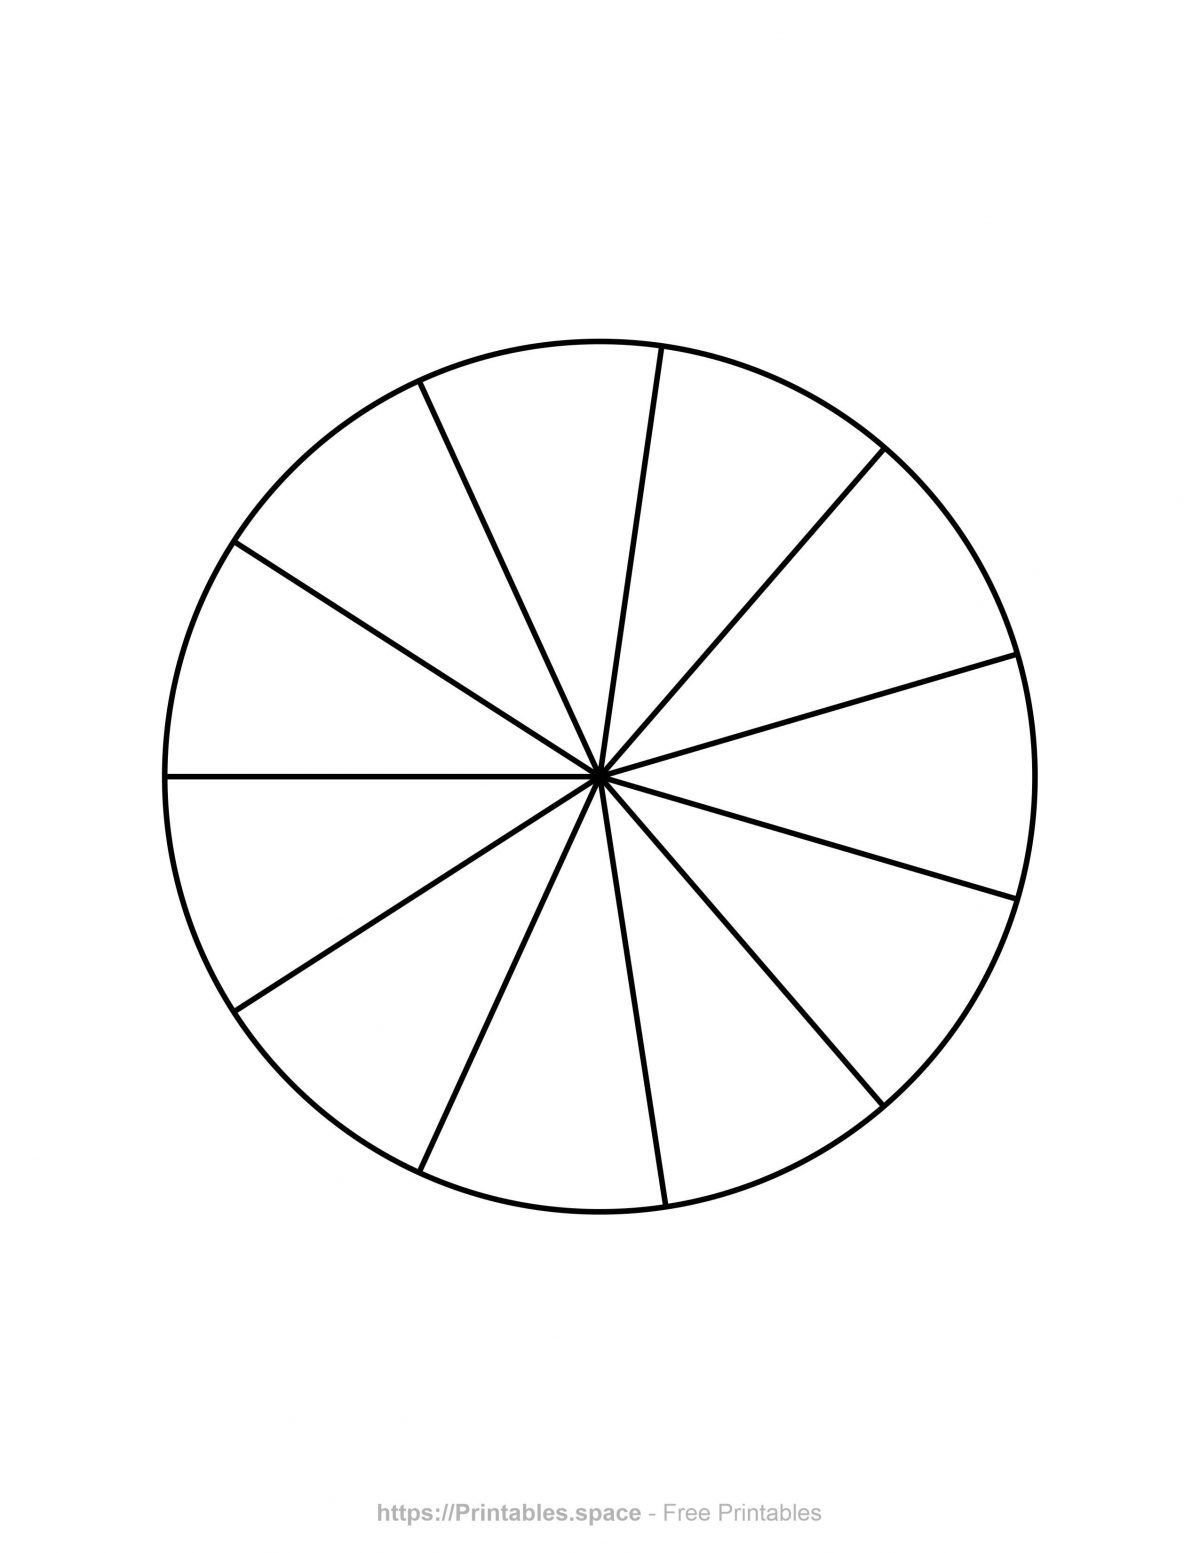 Pie Chart Template - 11 Pieces